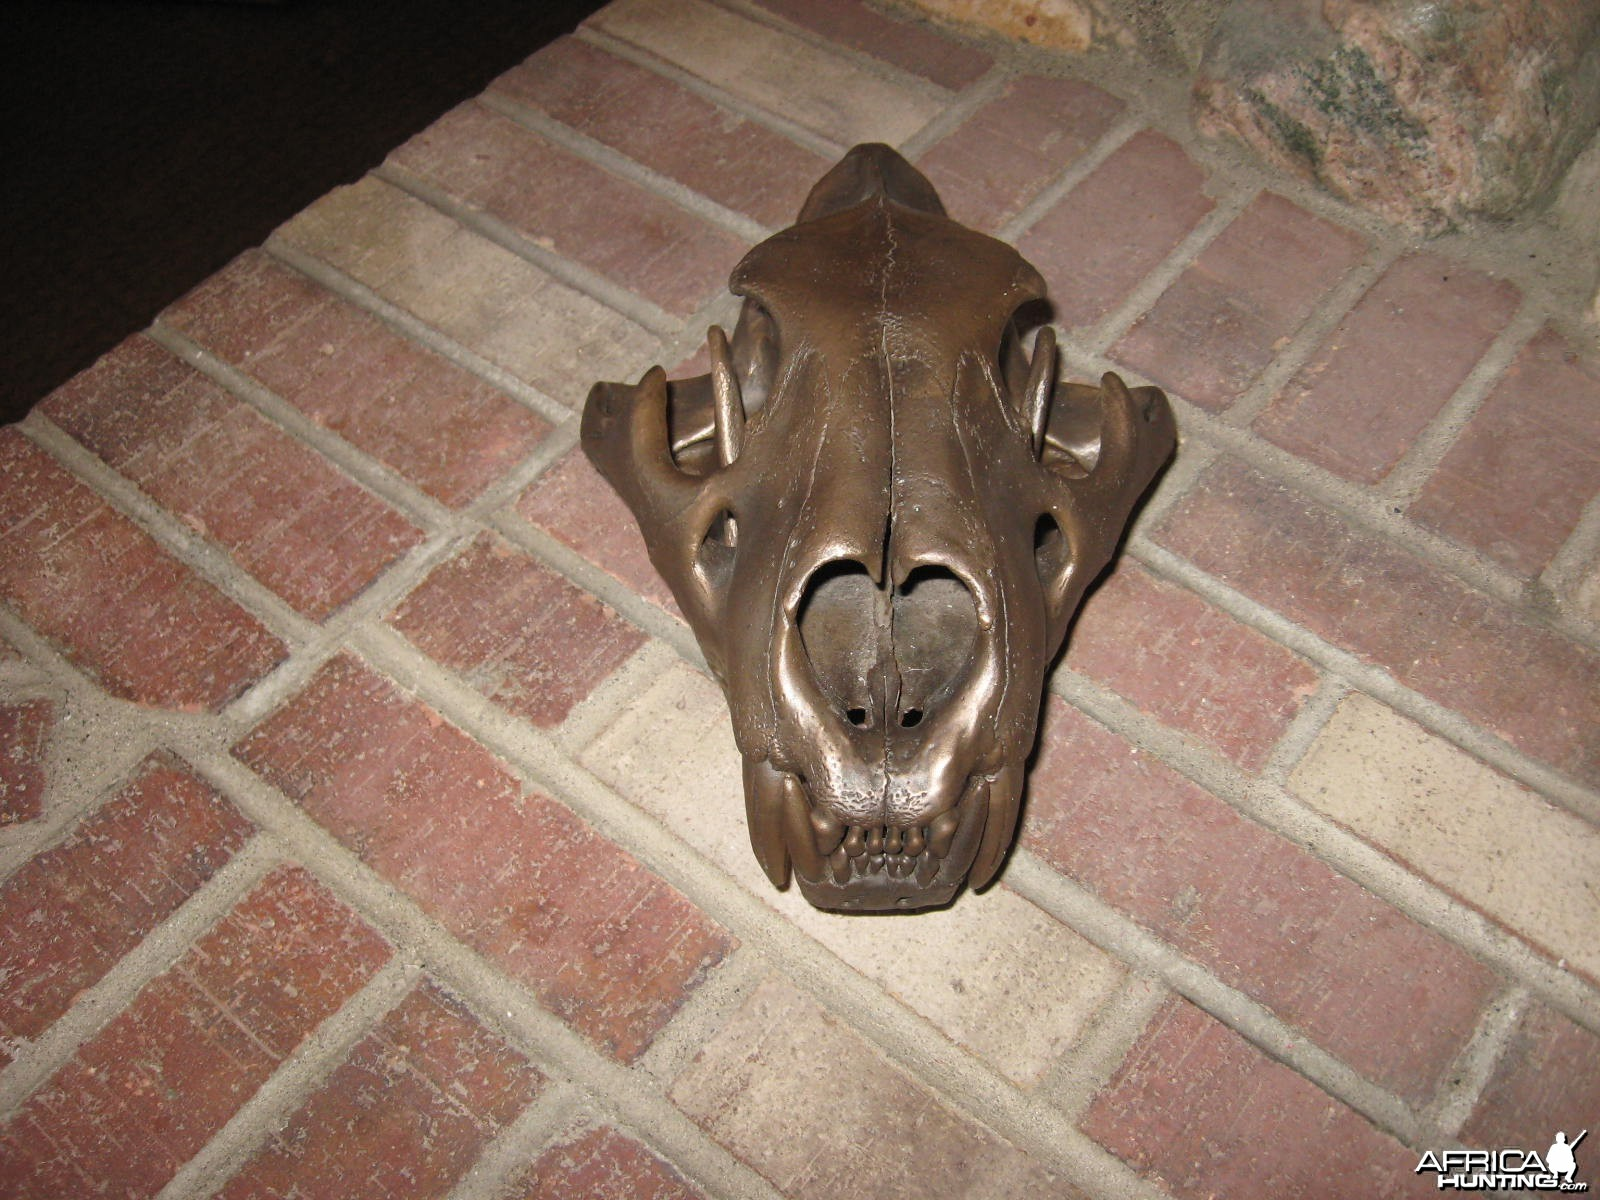 different angle of skull,pic's dont do it justice